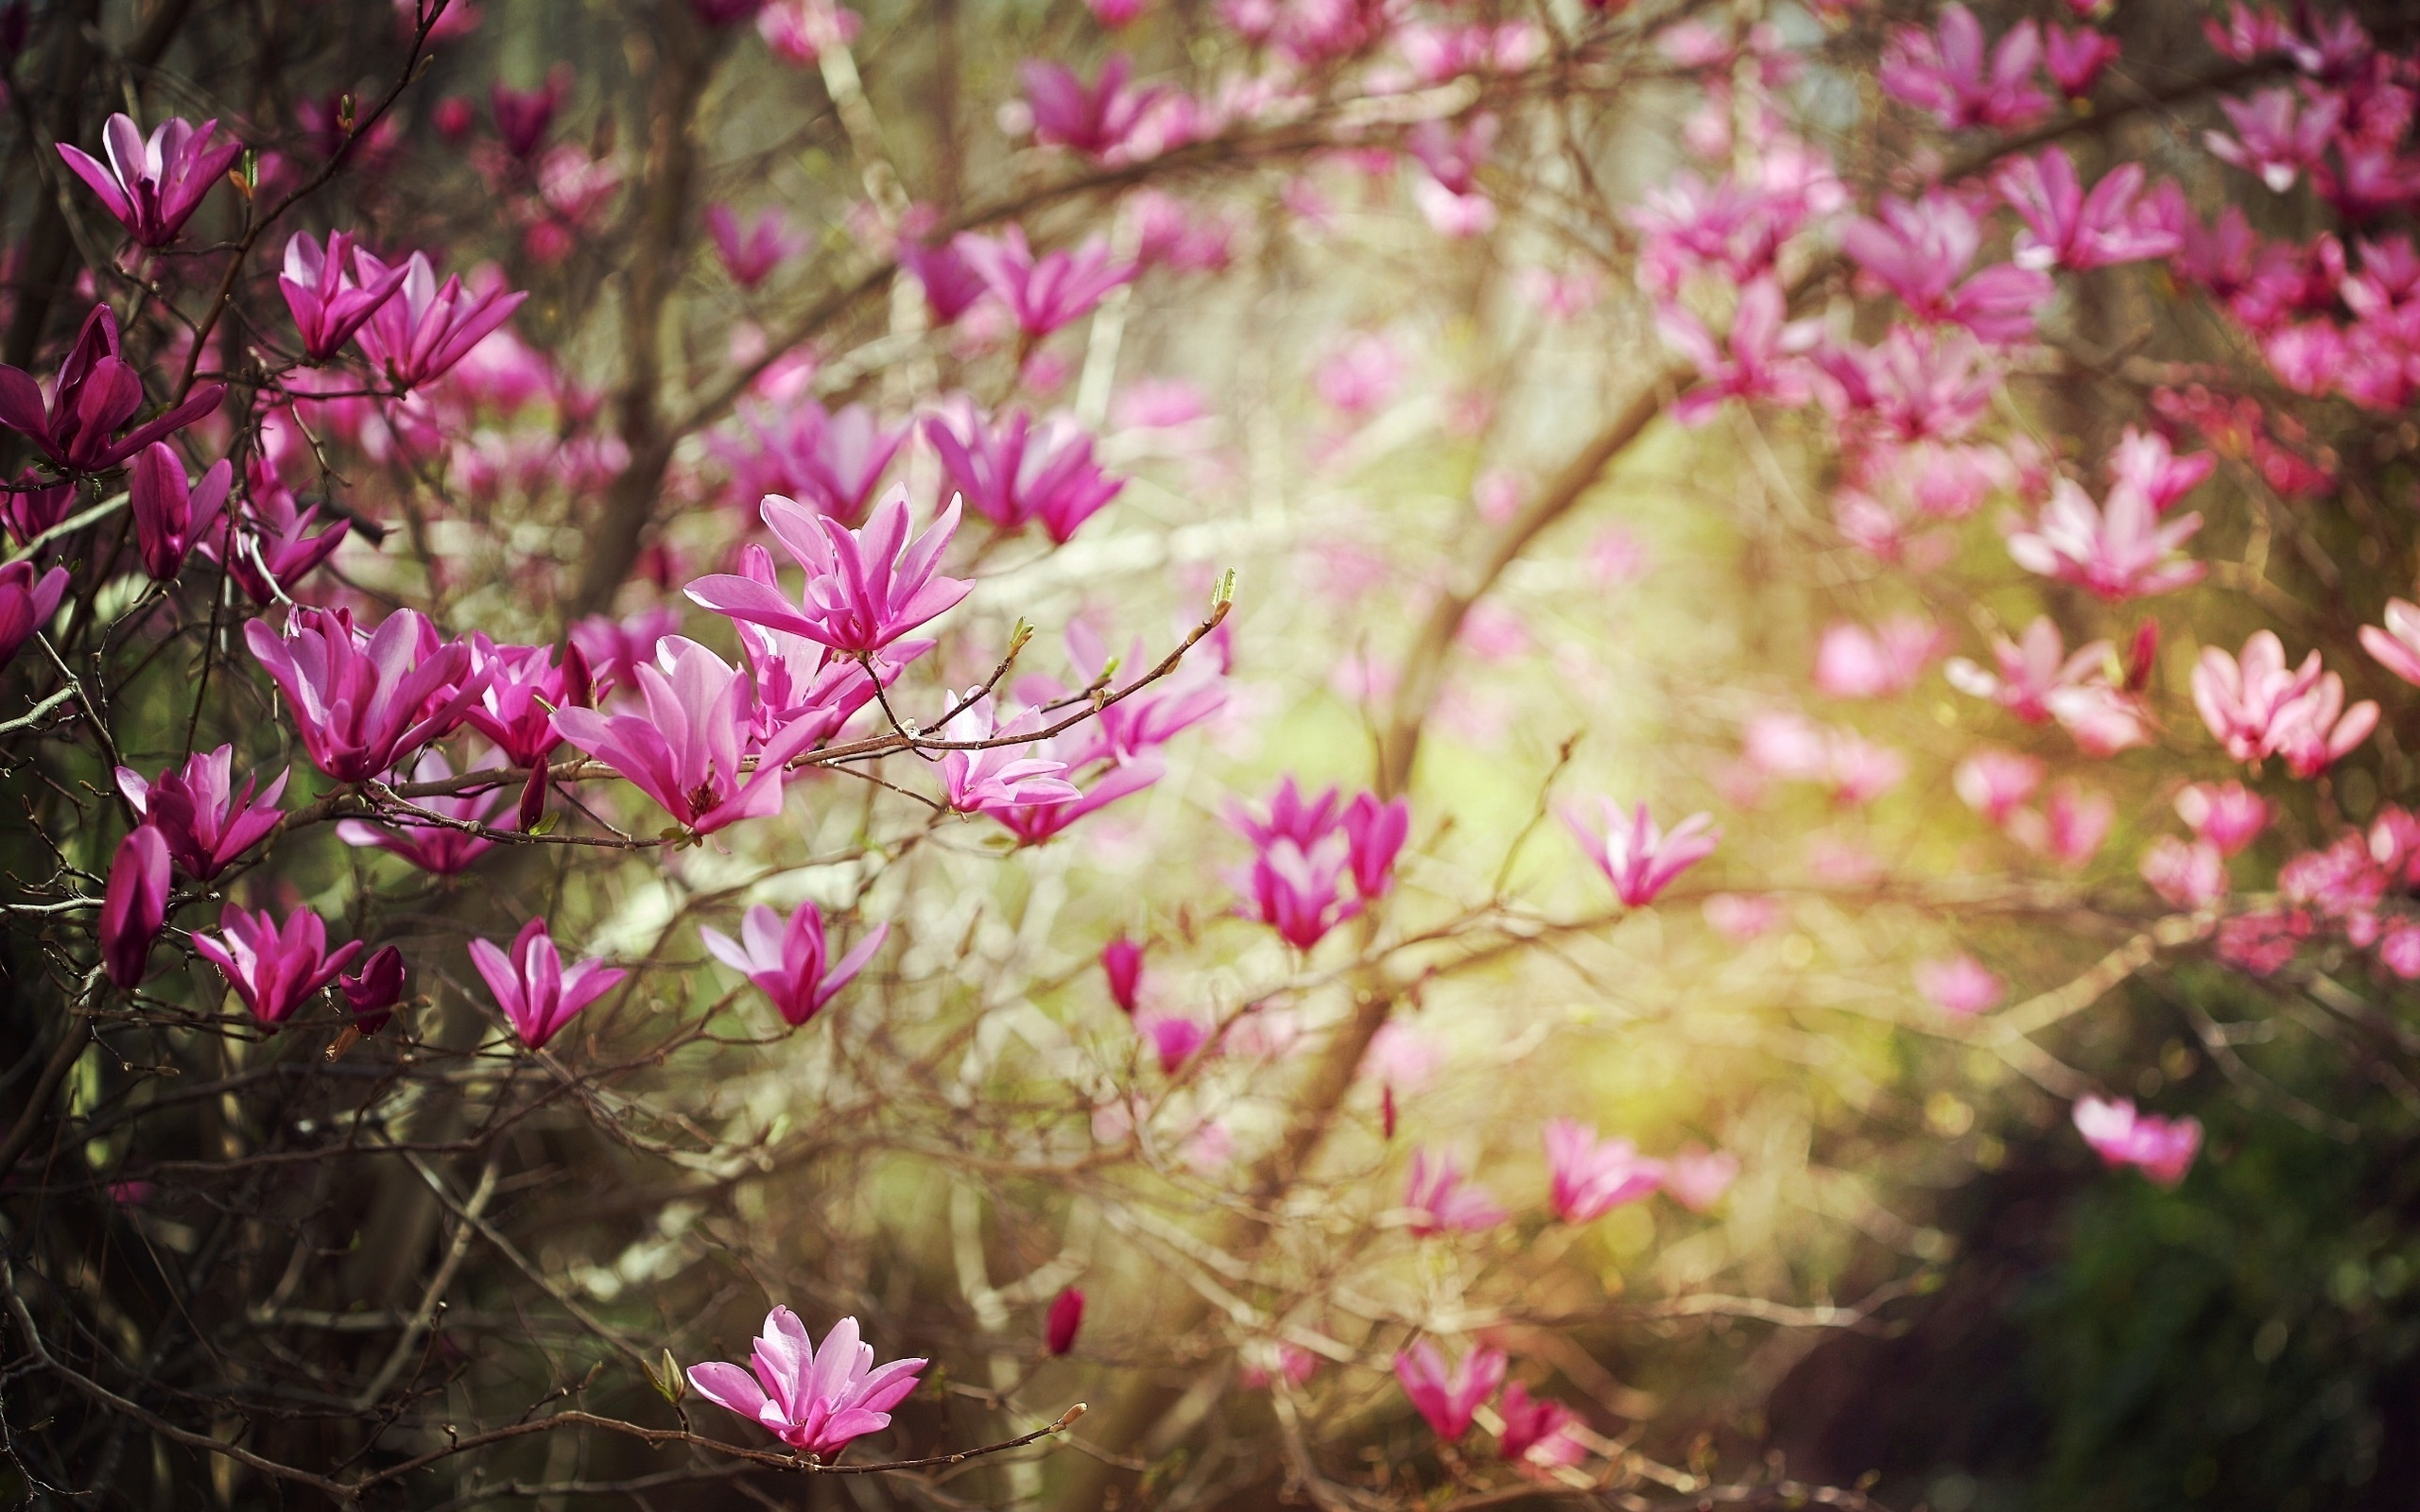 Dark pink spring flower 2560 x 1600 download close